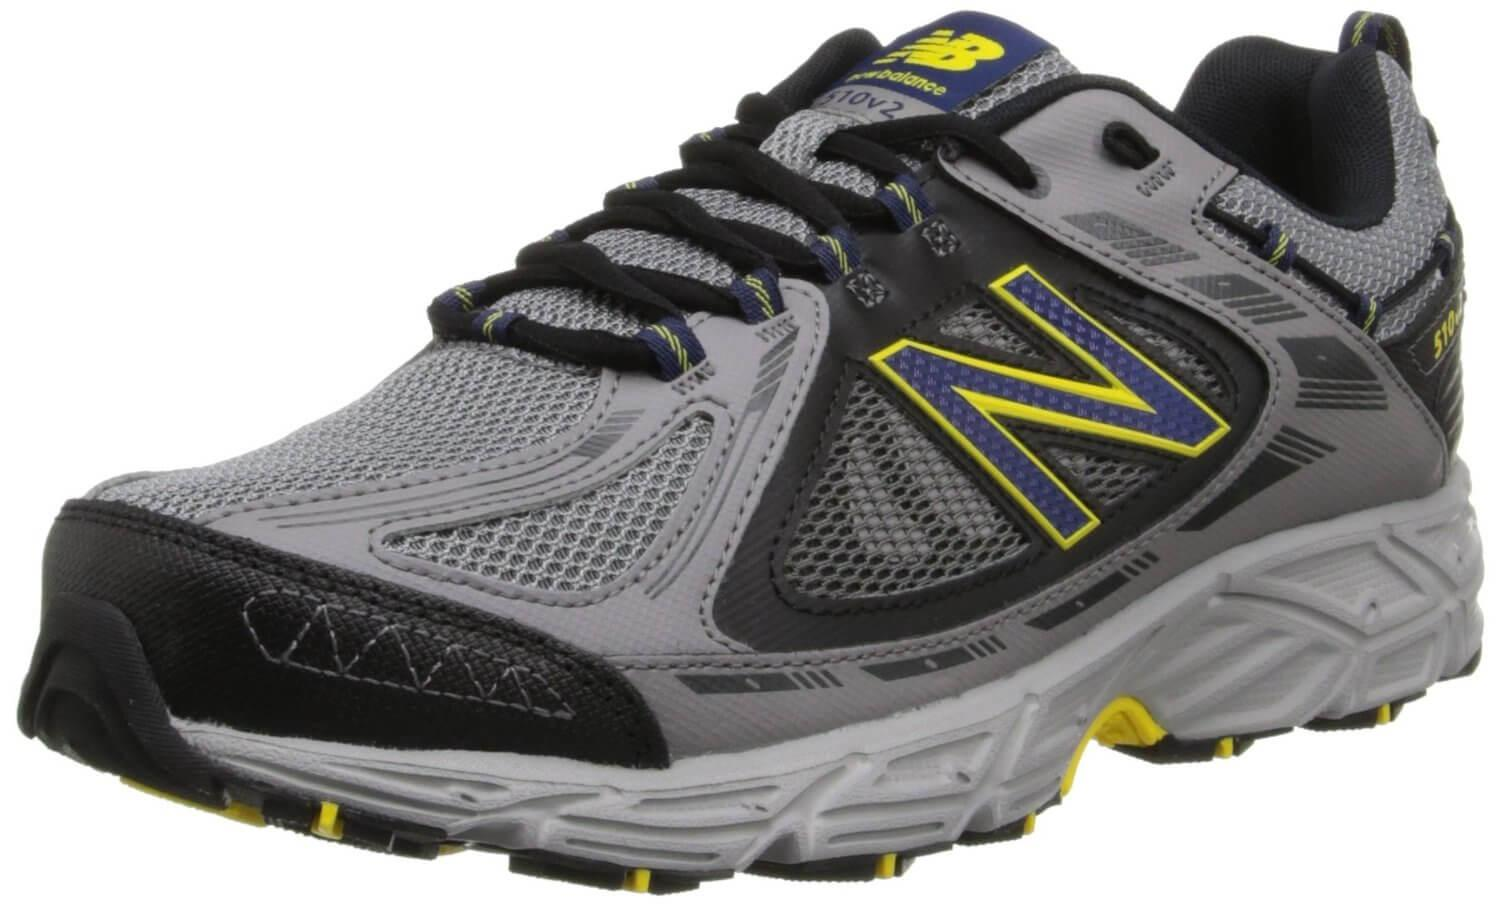 new balance trail running shoes reviews new balance trainers for high arches